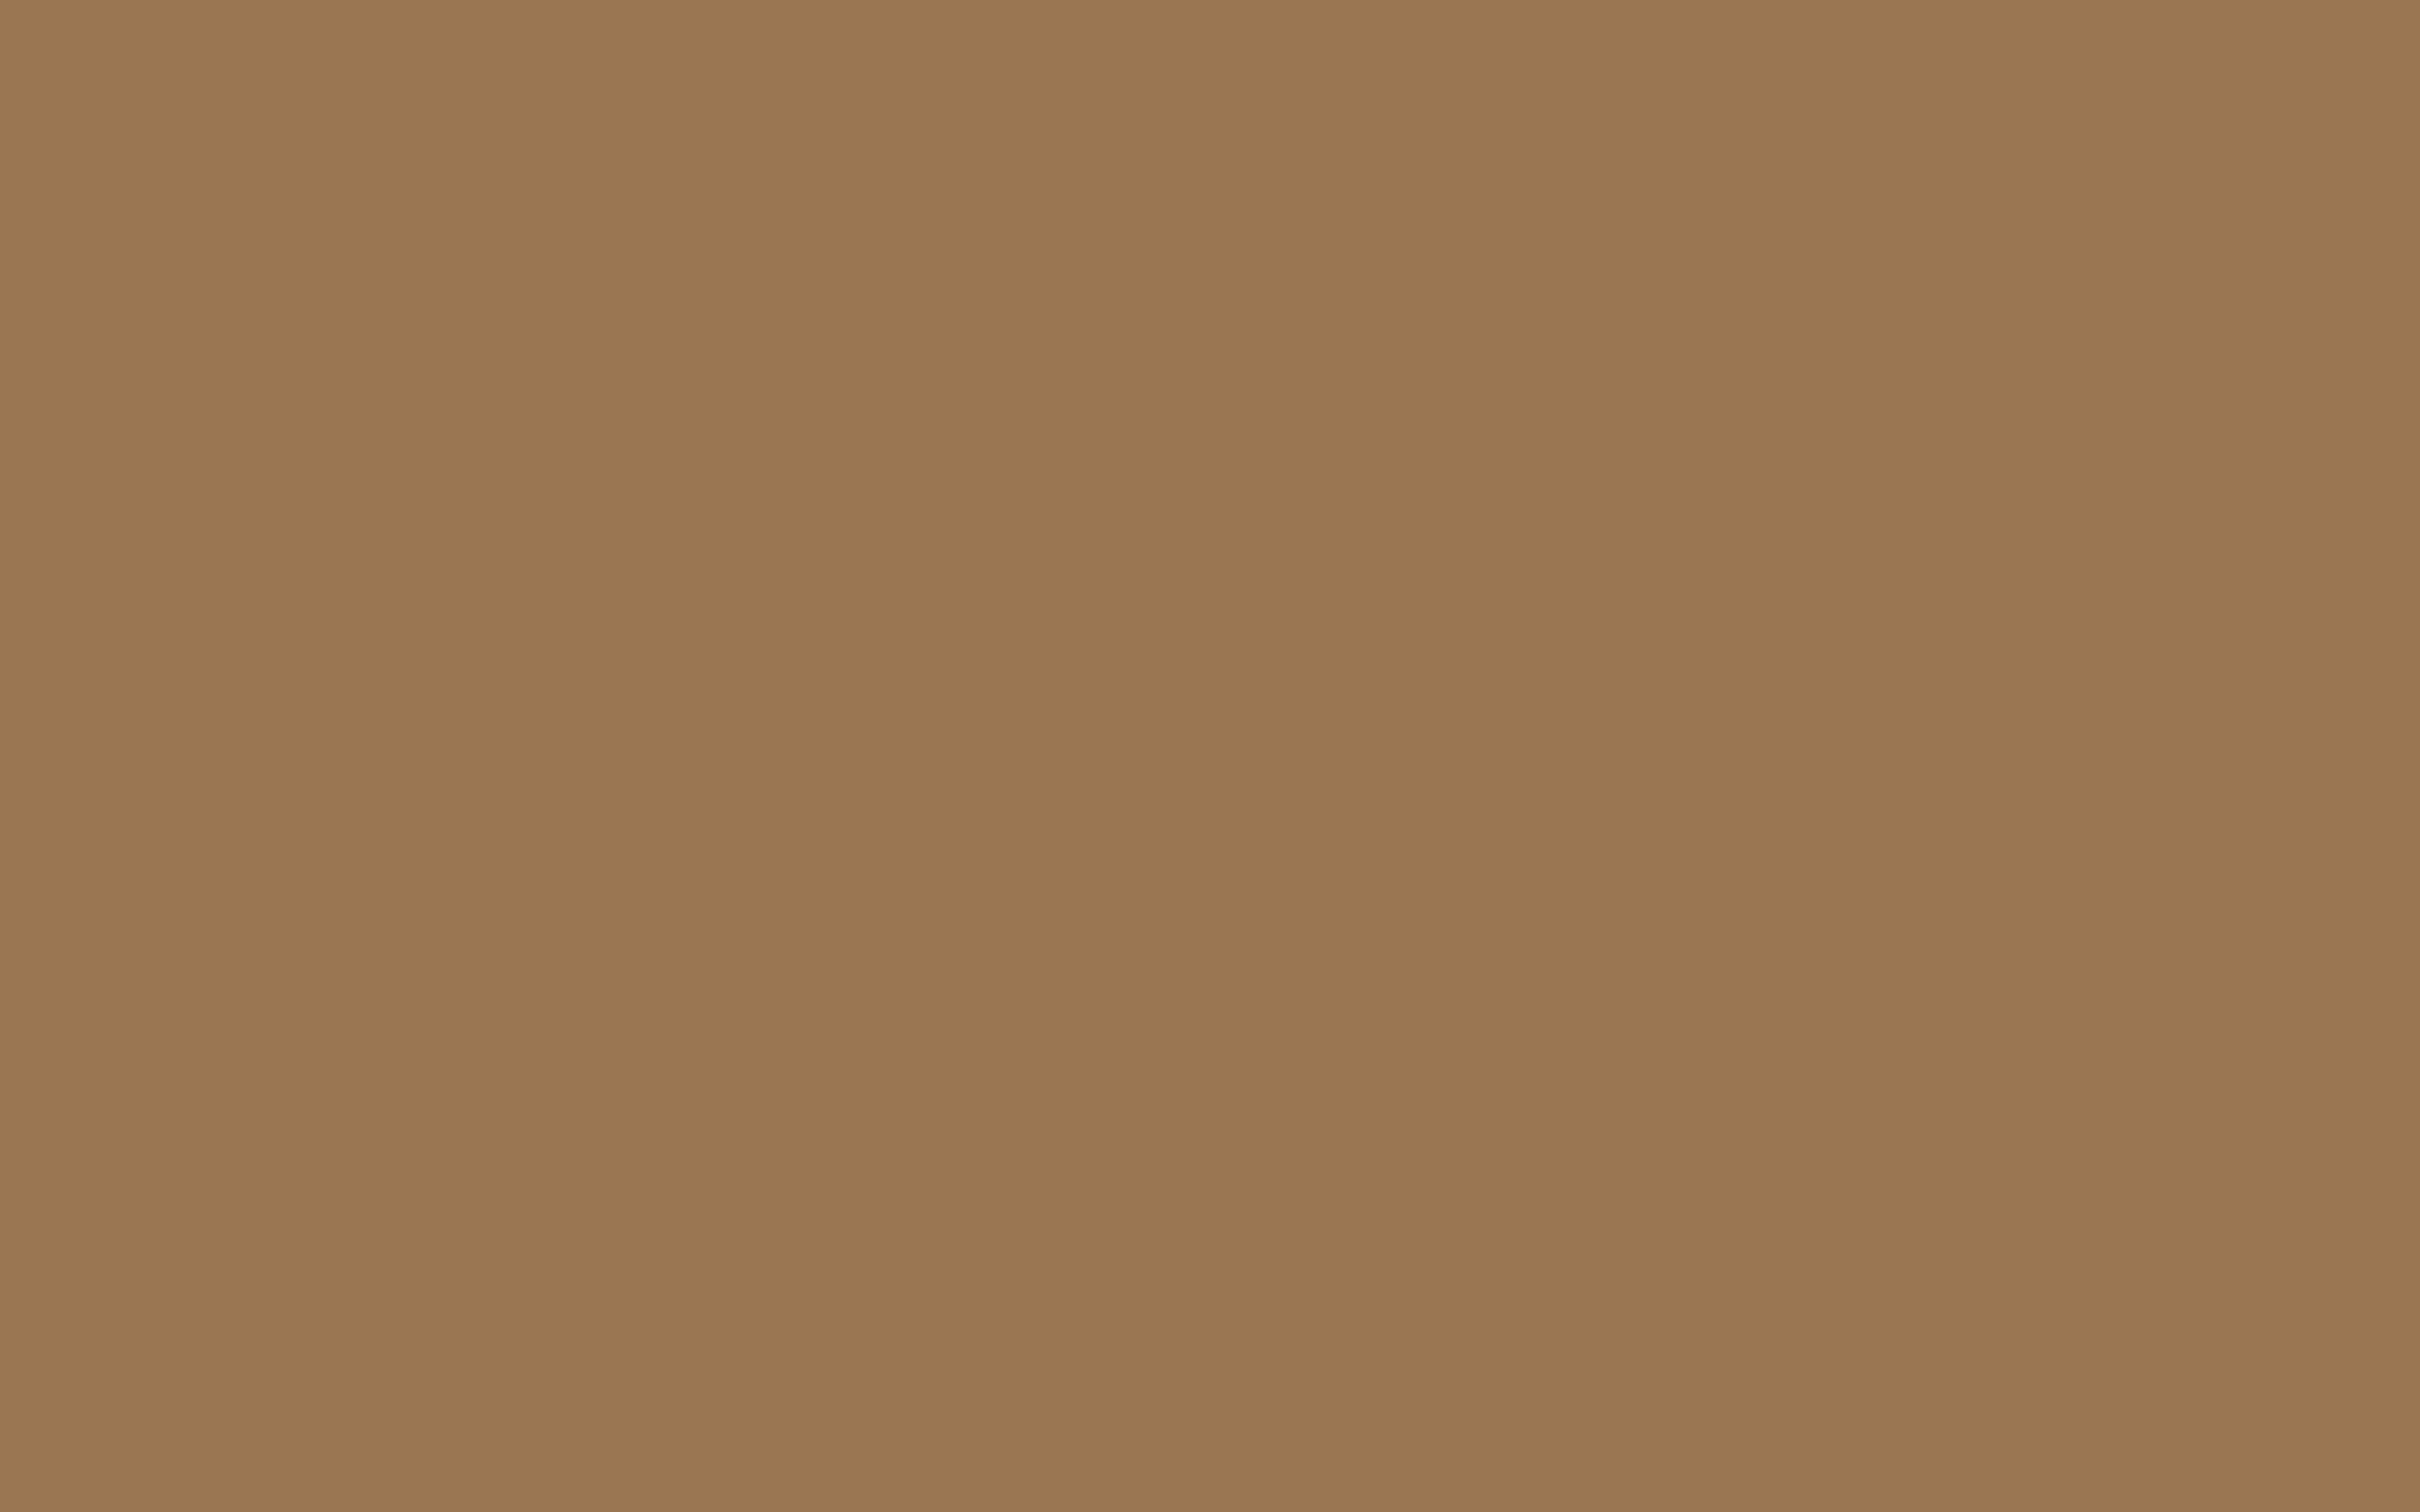 2880x1800 Dirt Solid Color Background